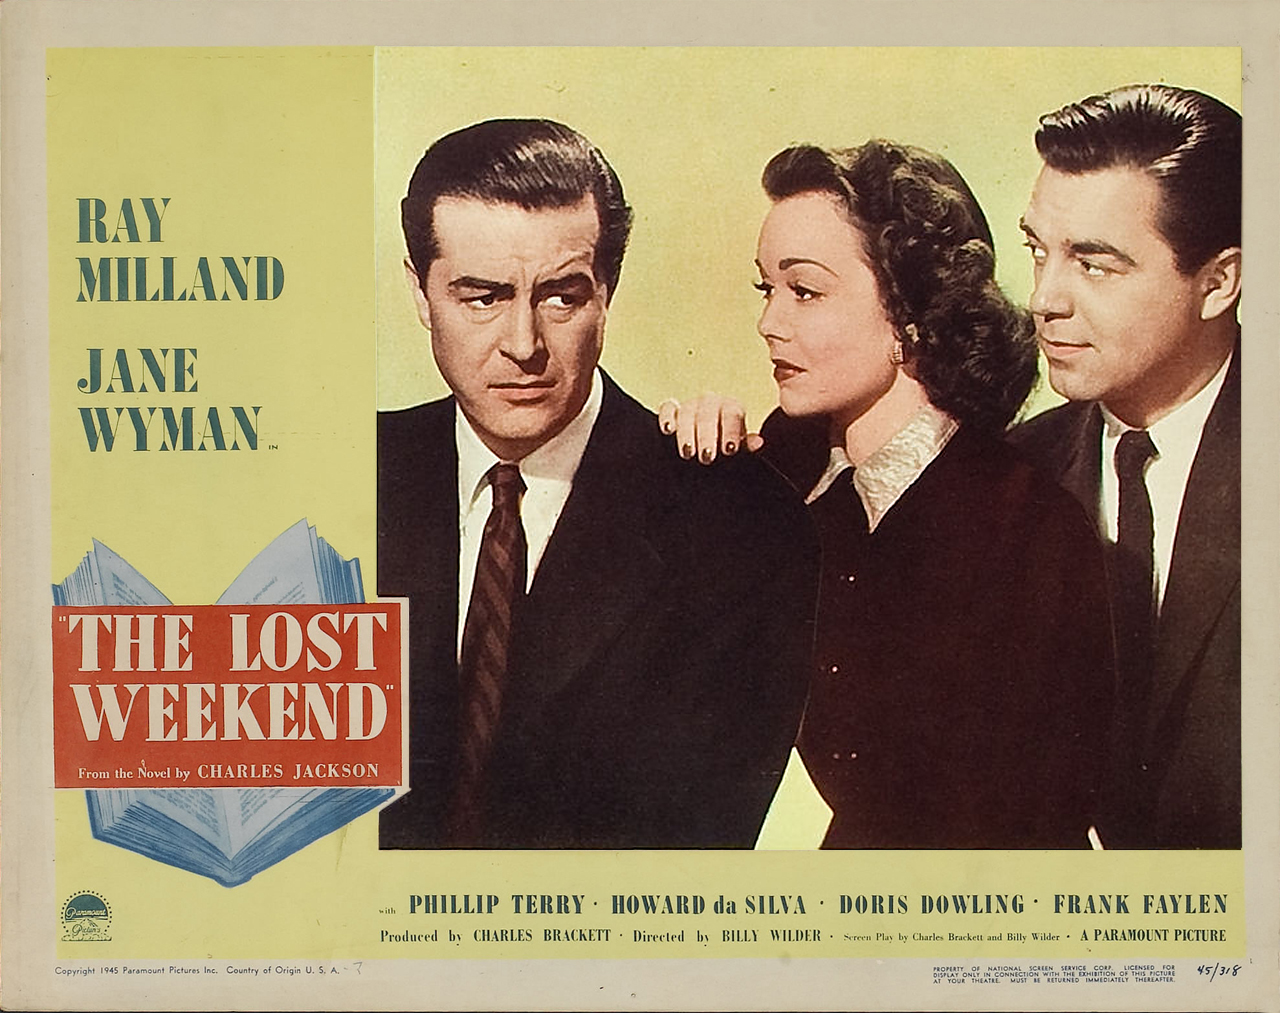 Ray Milland, Phillip Terry, and Jane Wyman in The Lost Weekend (1945)